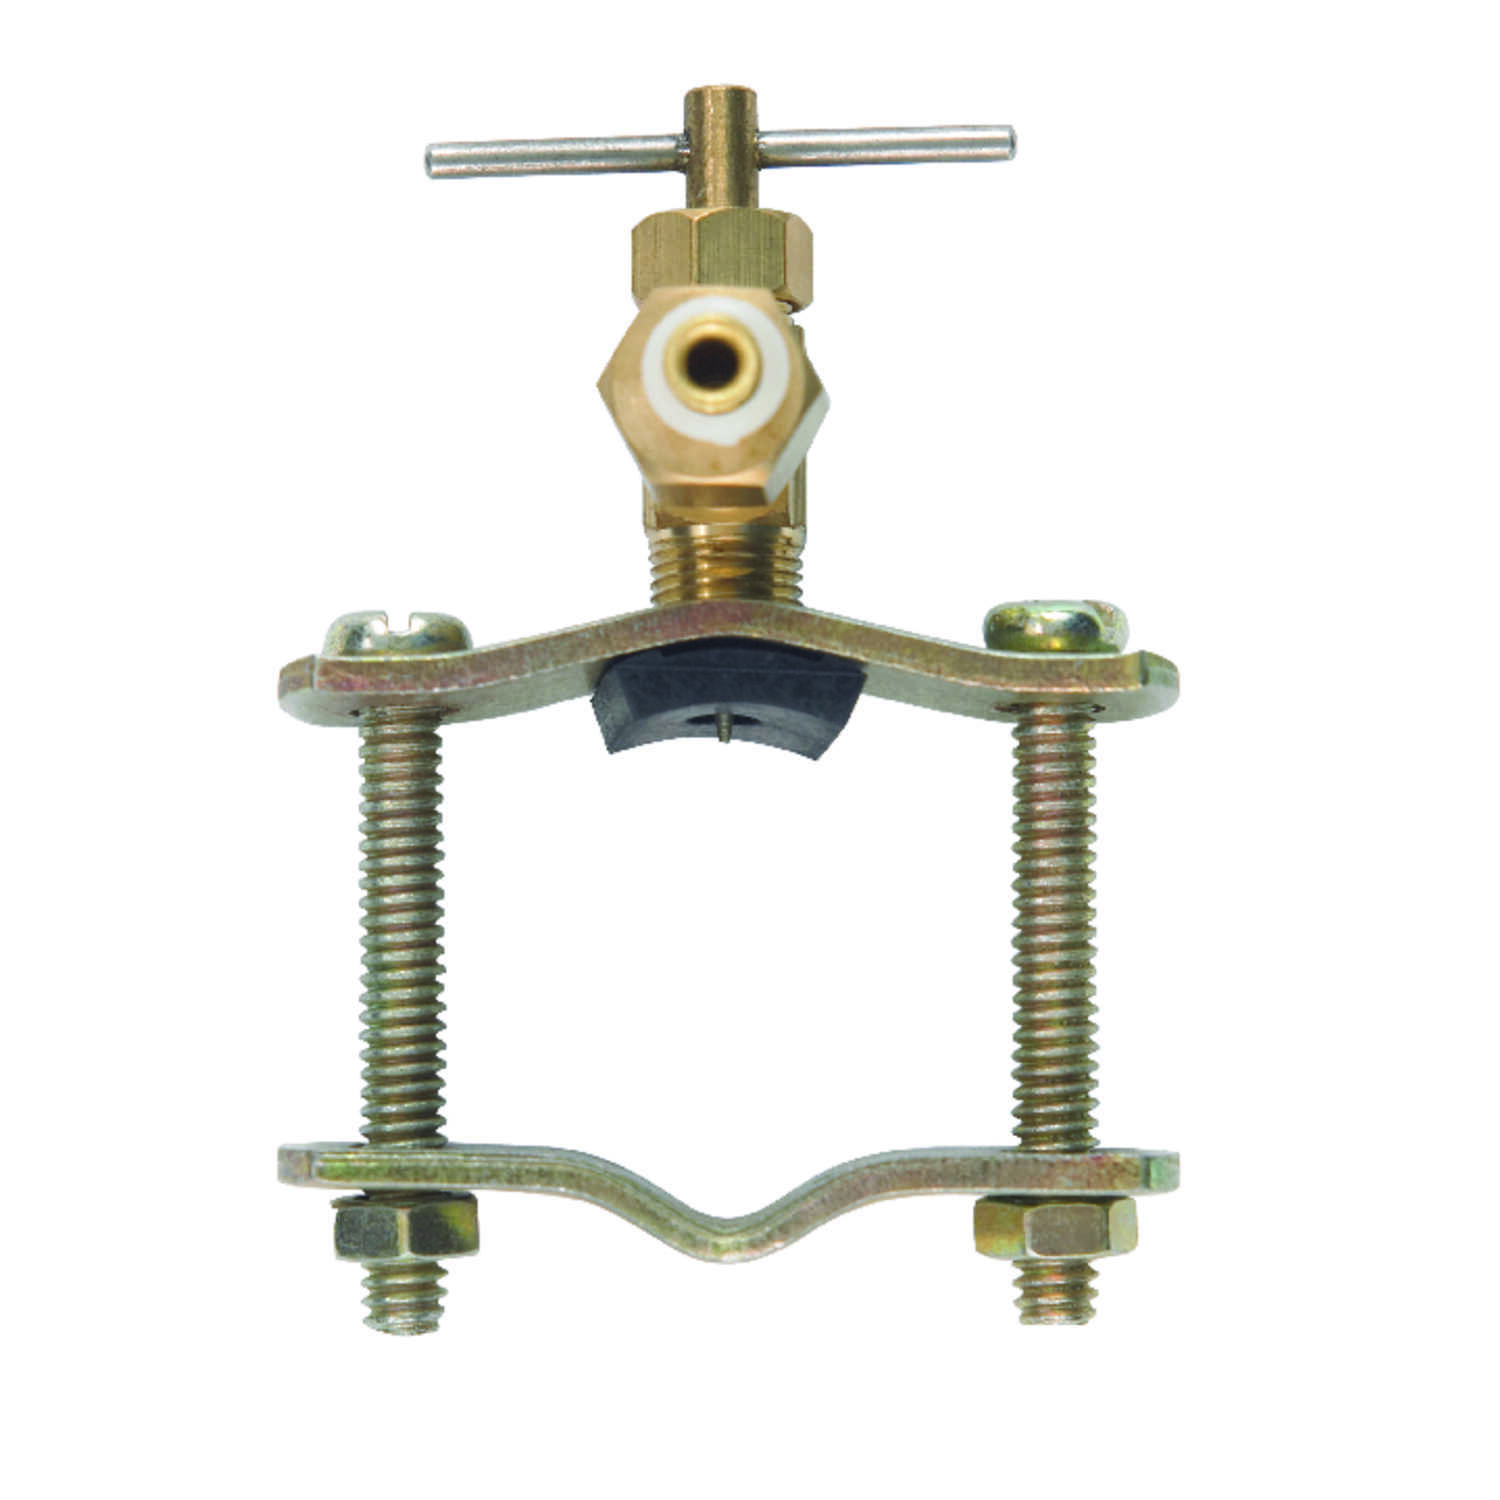 JMF  1/4 in. Dia. x 3/8 in. Dia. Brass  Compression  Needle Valve